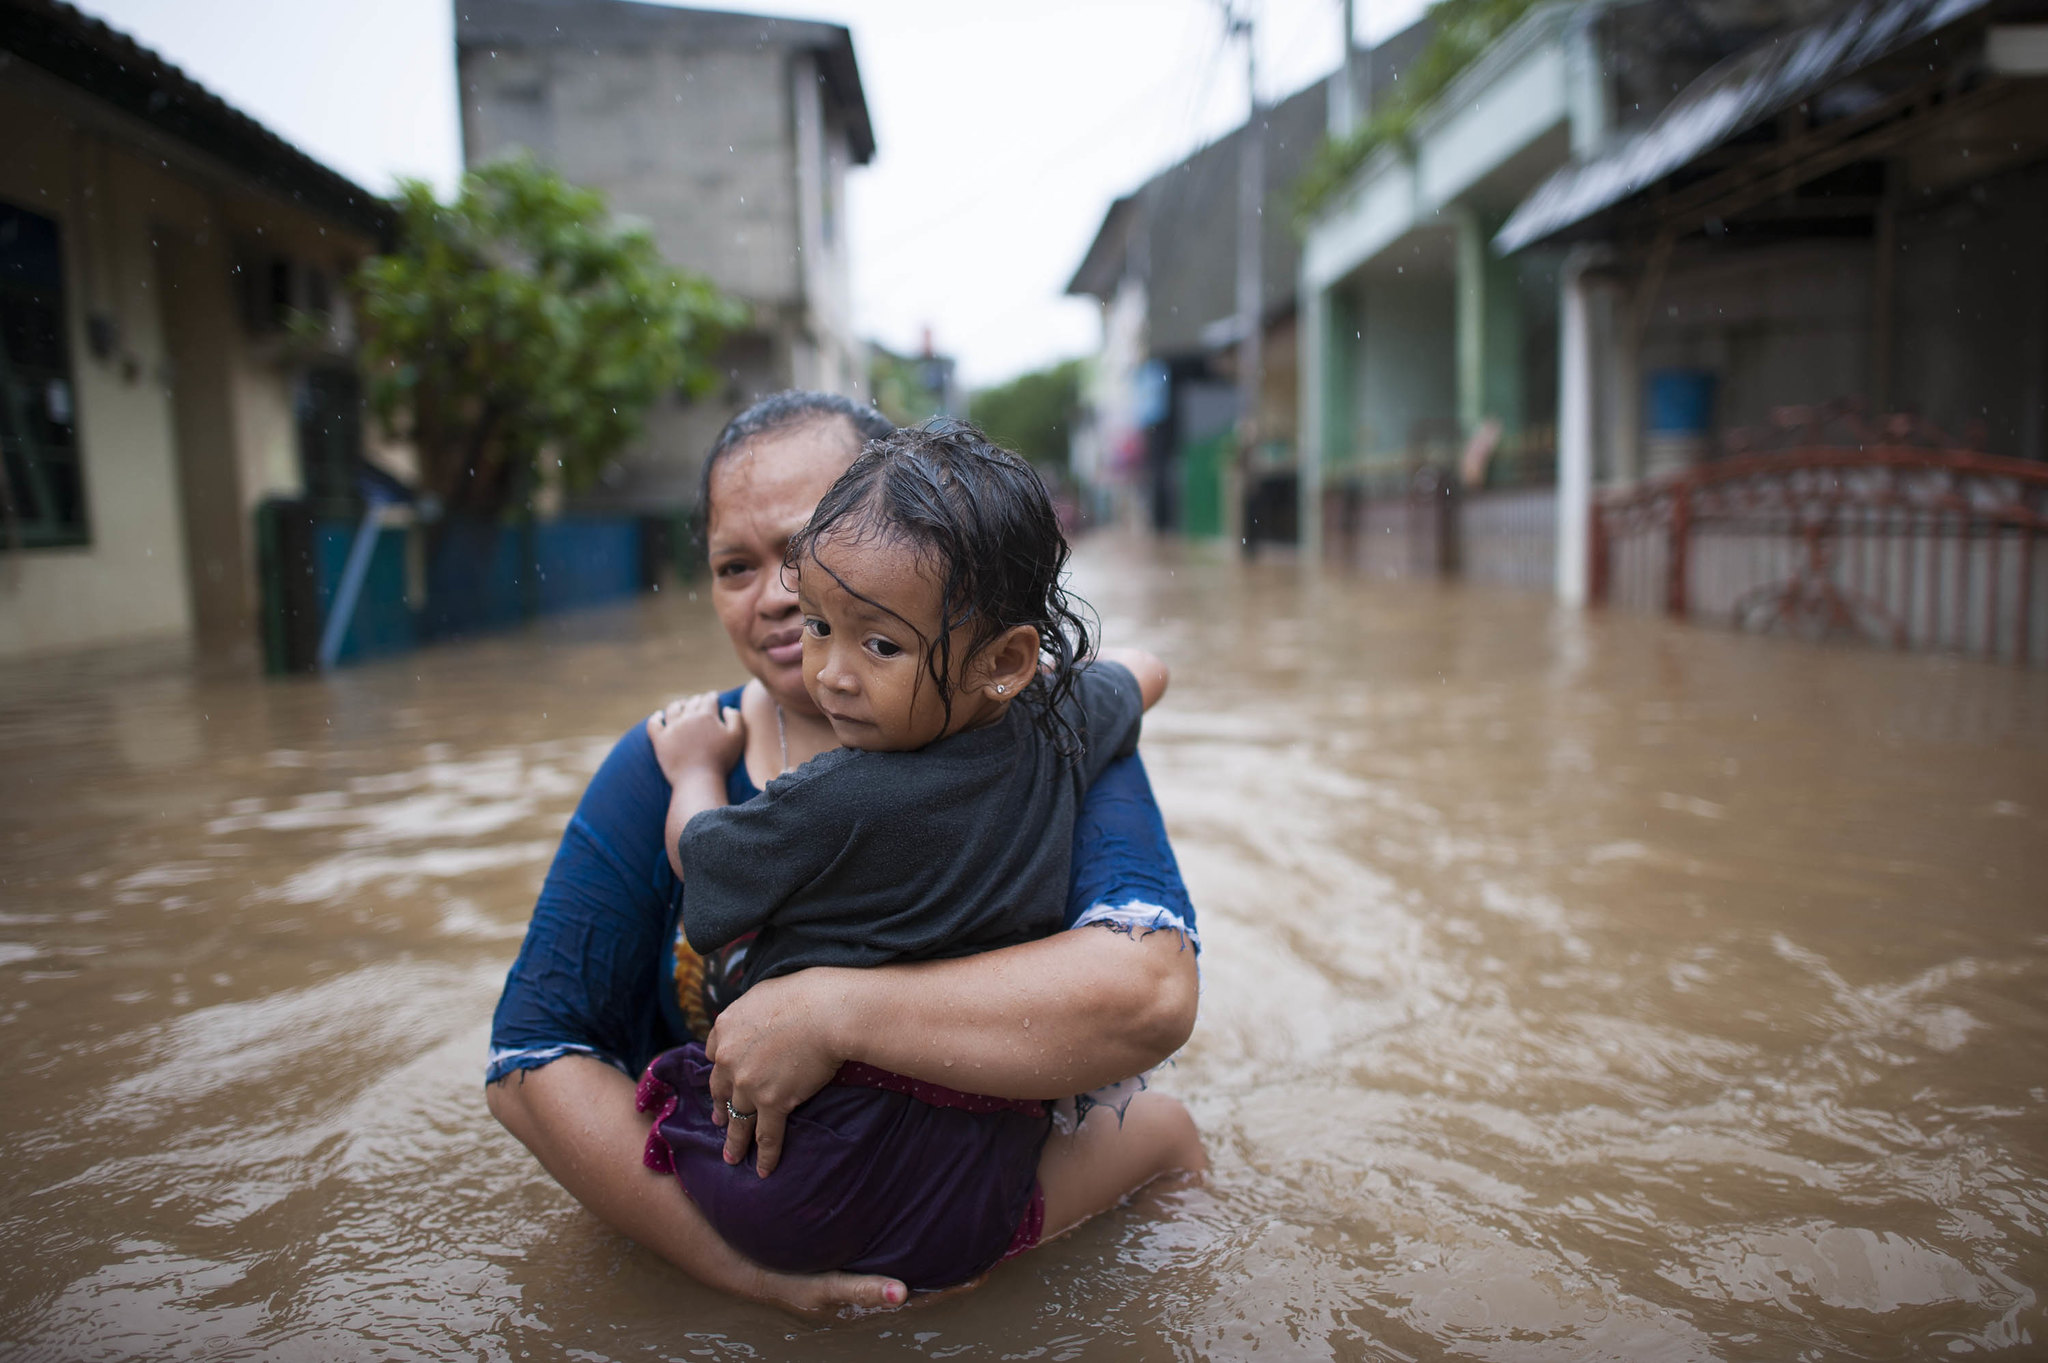 Woman and Child in Flood Water